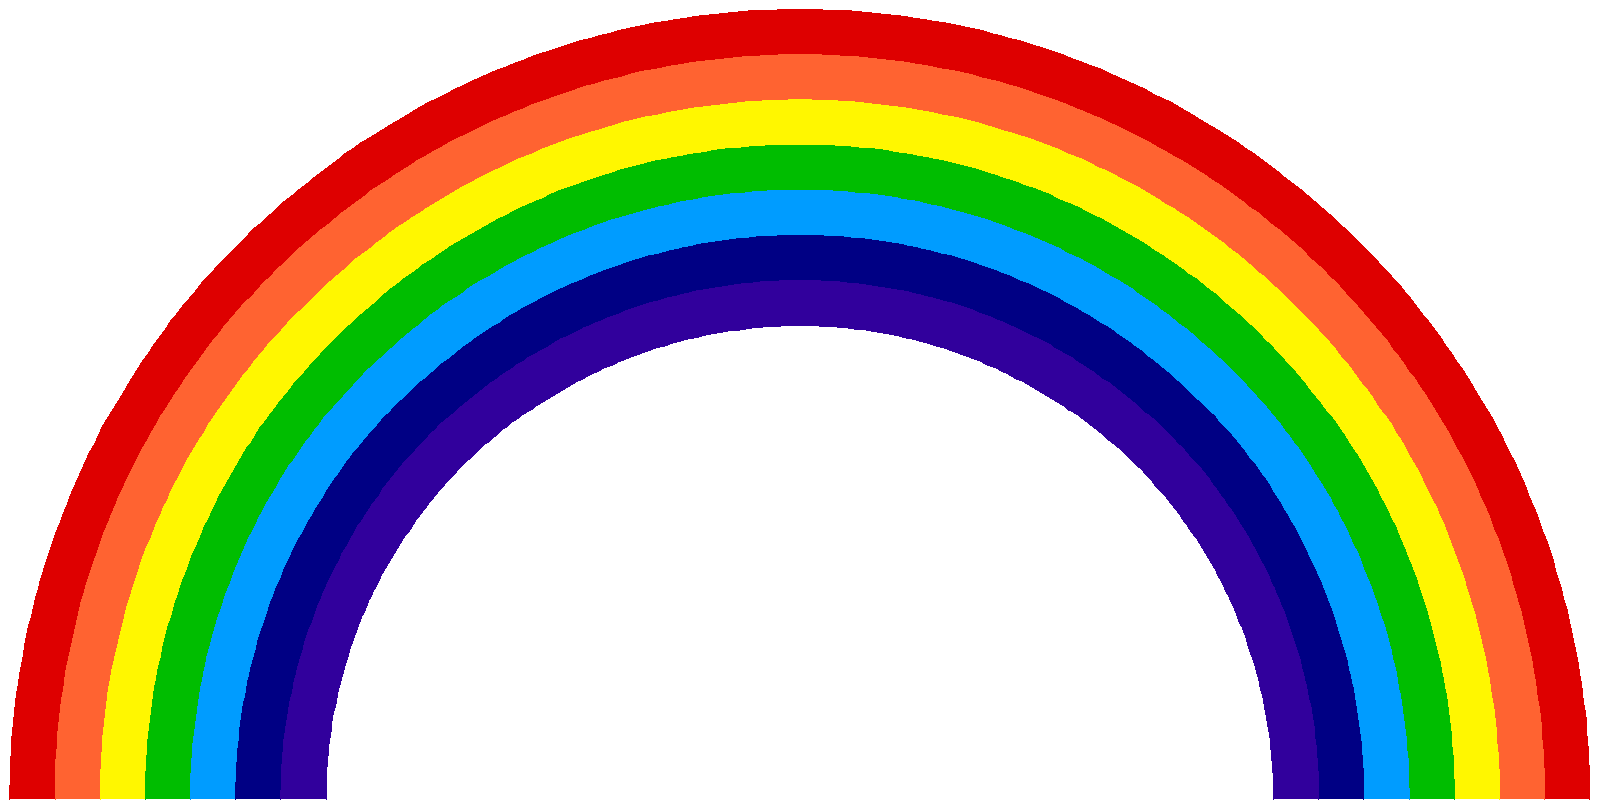 Musings on Realities: What's at the End of YOUR Rainbow? Rainbowsol